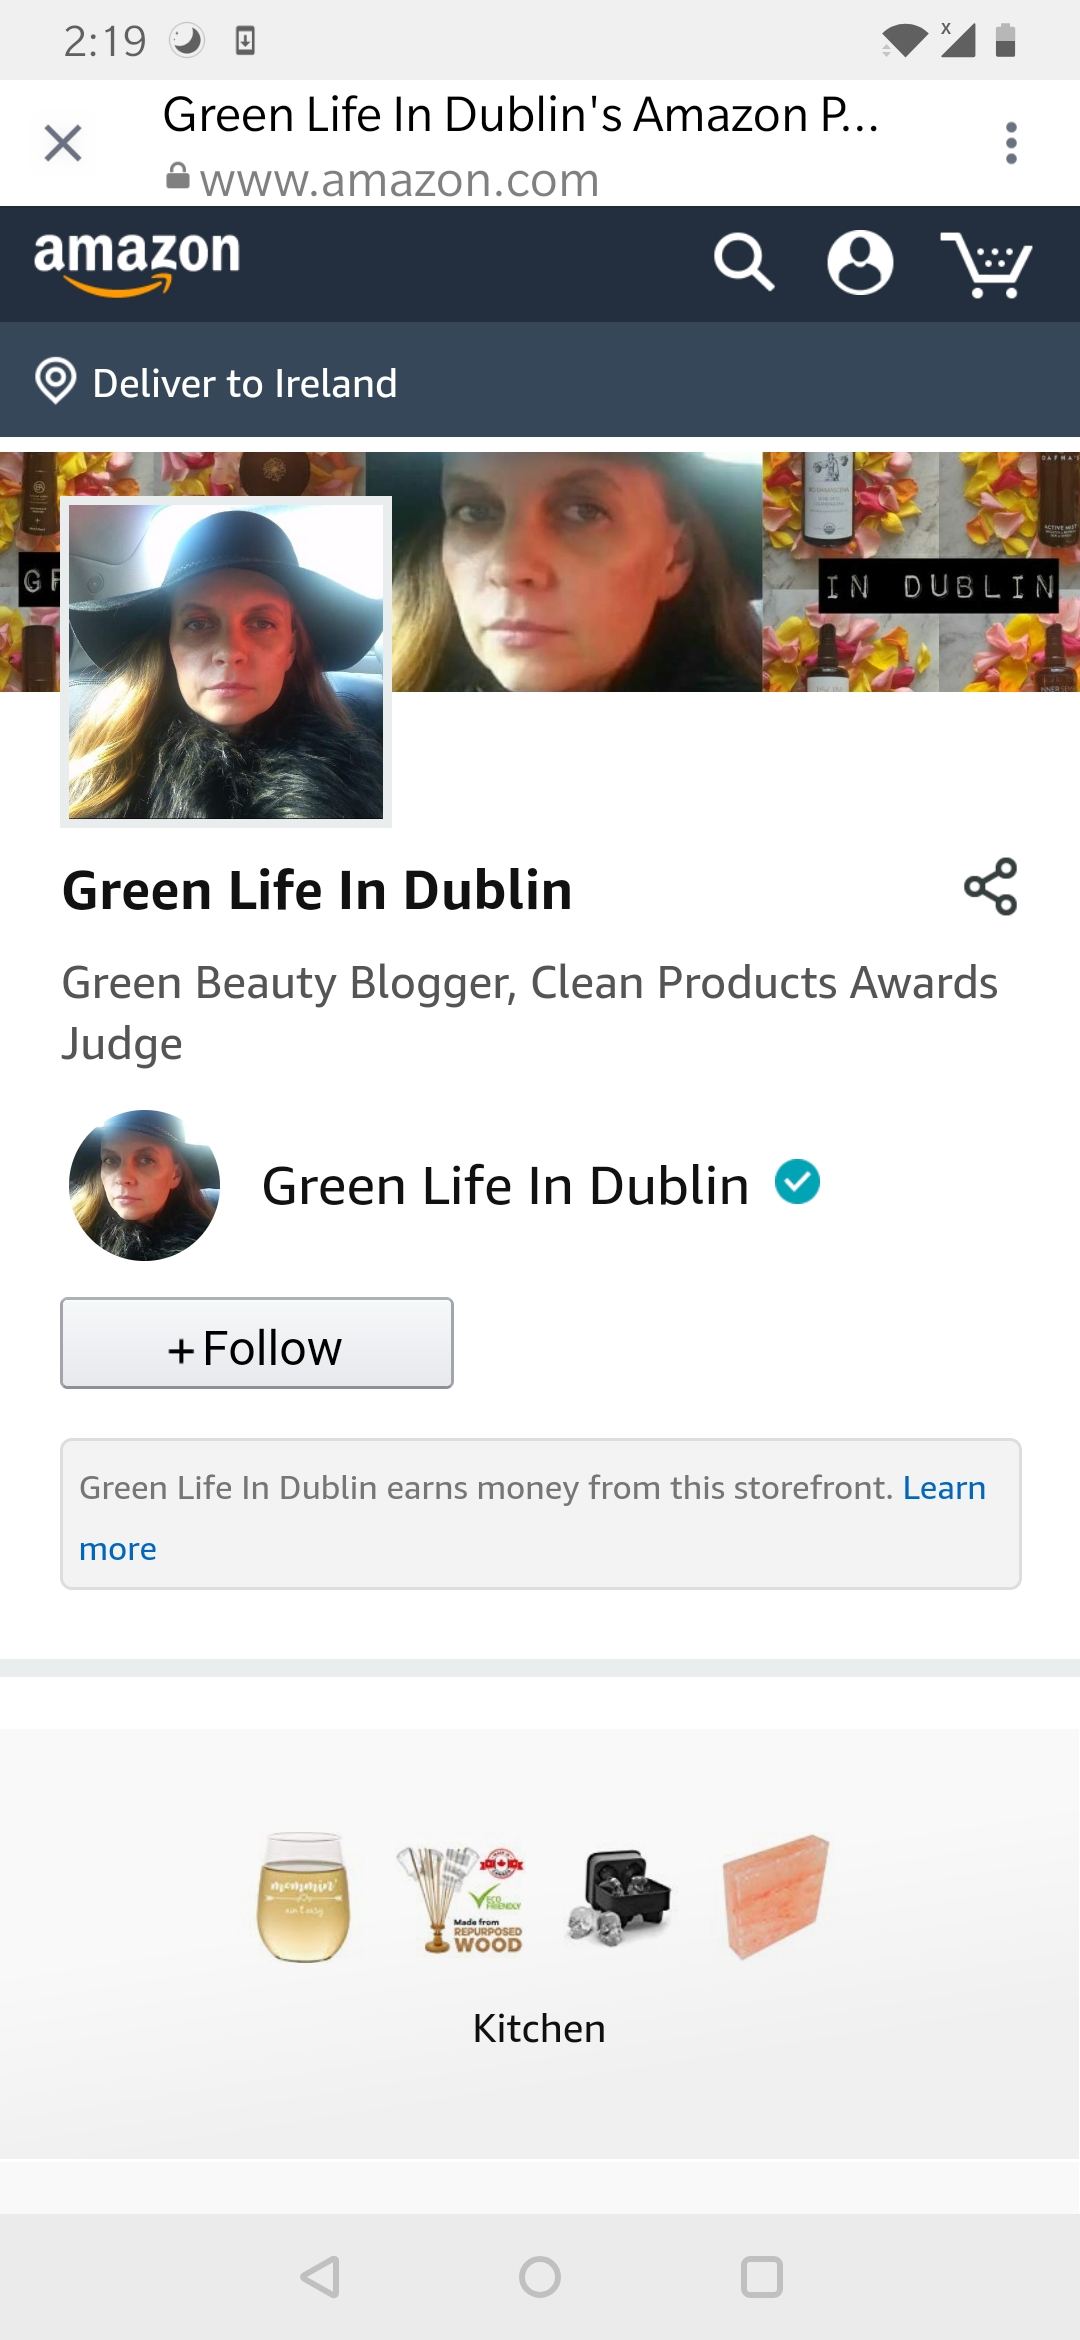 Green Life In Dublin Amazon Page